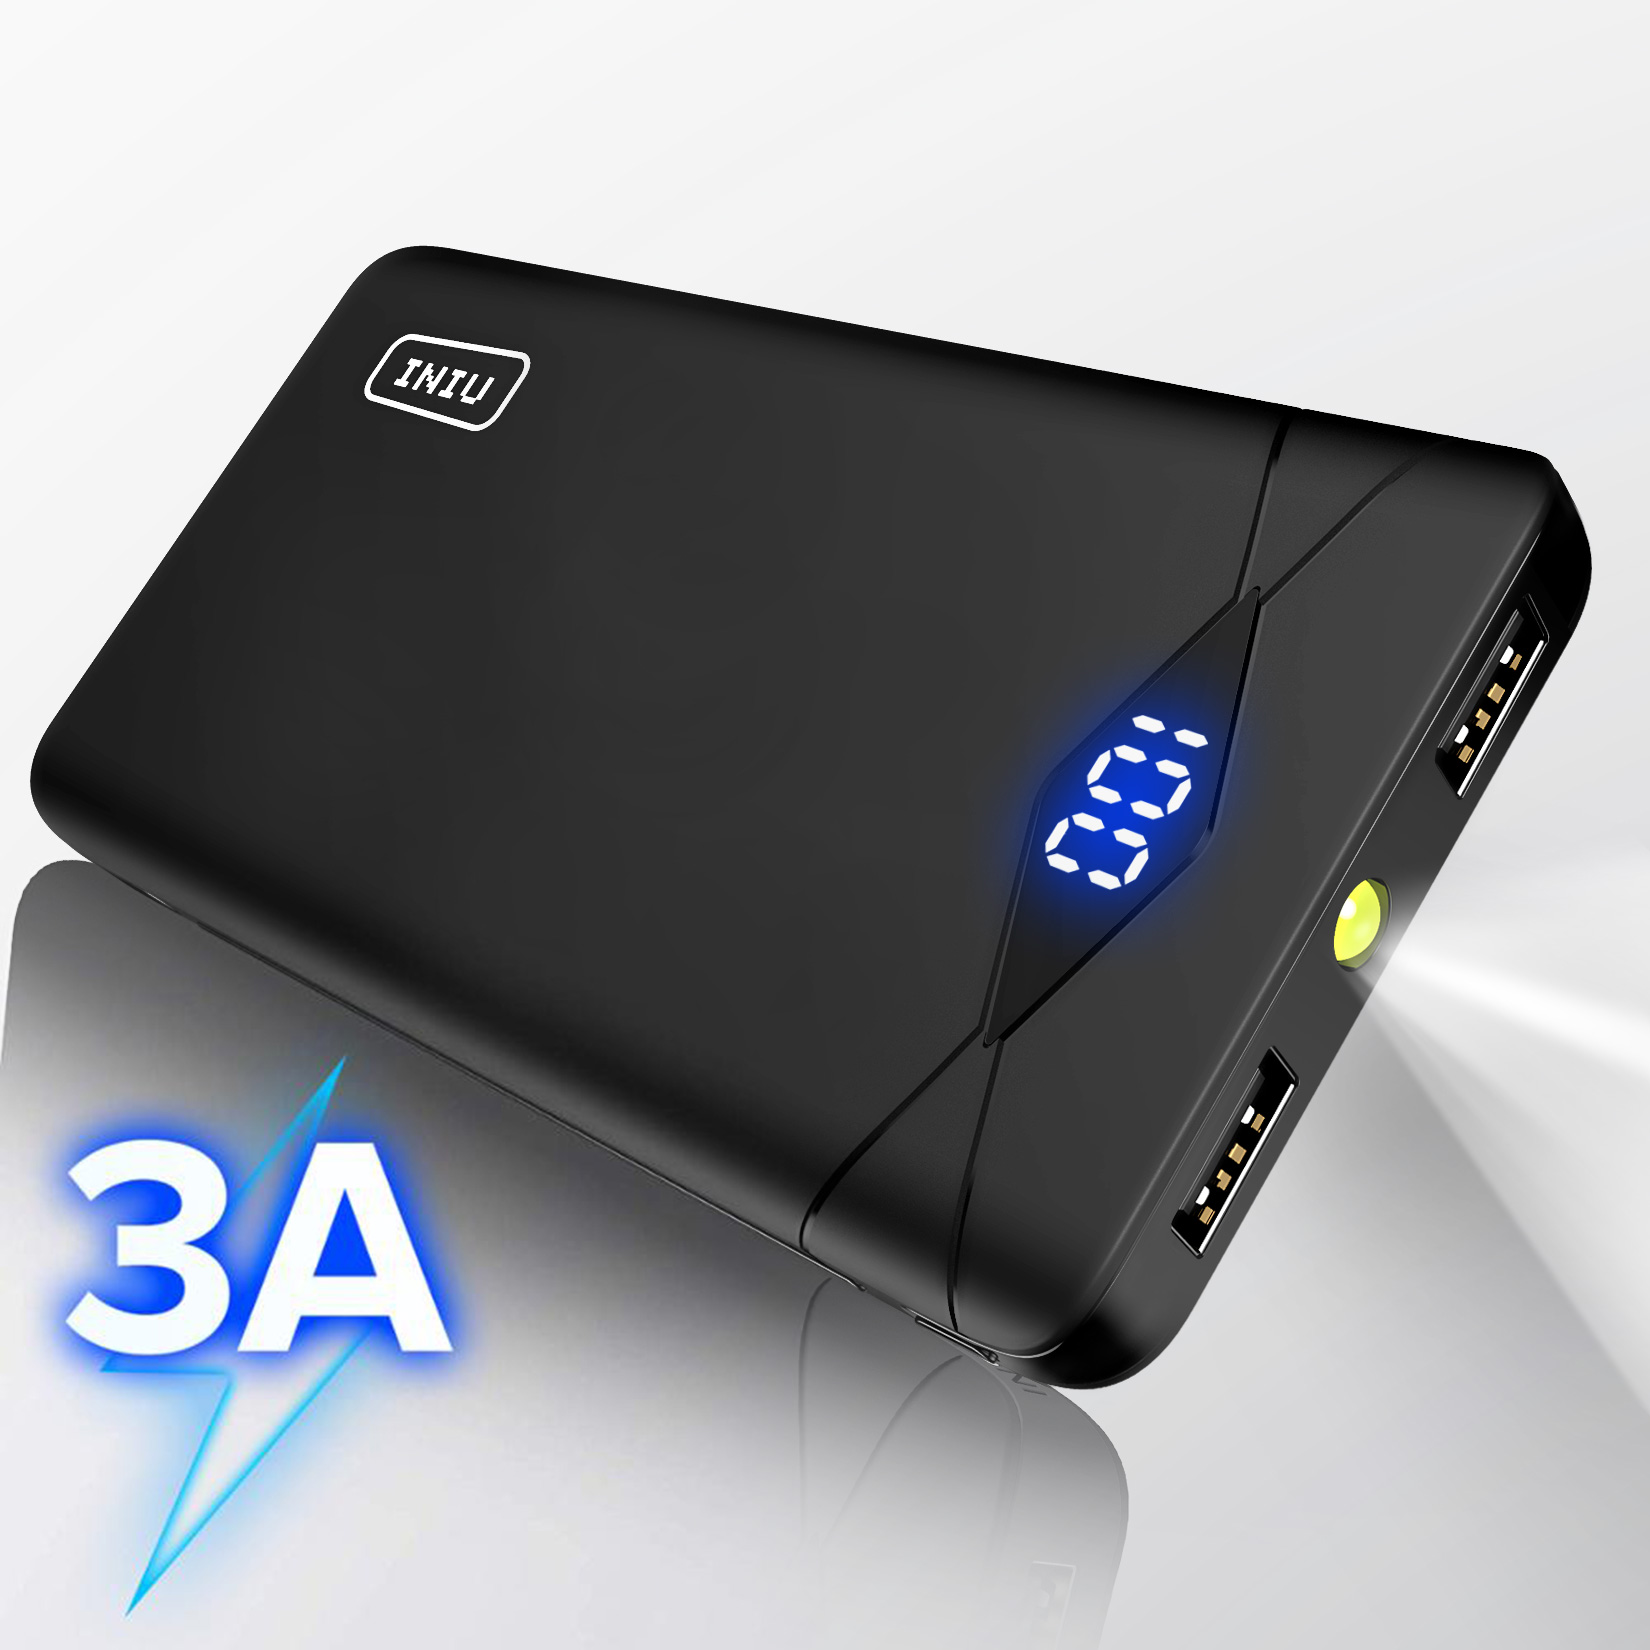 INIU 3A 10000mAh LED Power Bank Dual USB Portable Charger Powerbank For iPhone Xiaomi Mi Phone External Battery Pack Poverbank